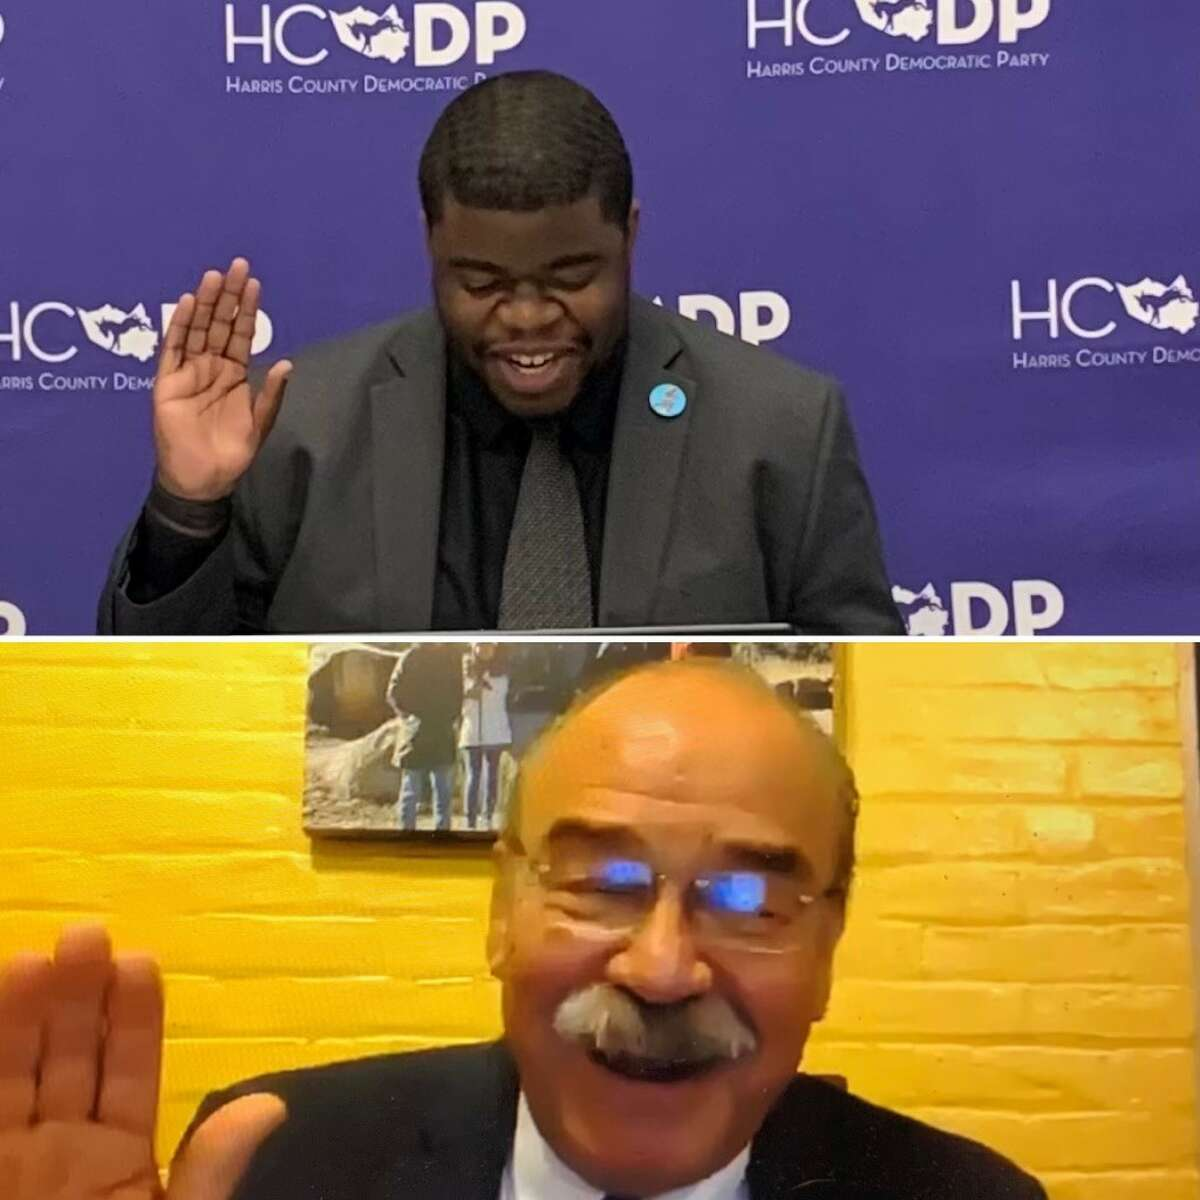 Odus Evbagharu (top) was elected Sunday as the first African-American to serve as Harris County Democratic Party Chair, according to a news release. He was sworn in by Texas Democratic Party Chair Gilberto Hinojosa.